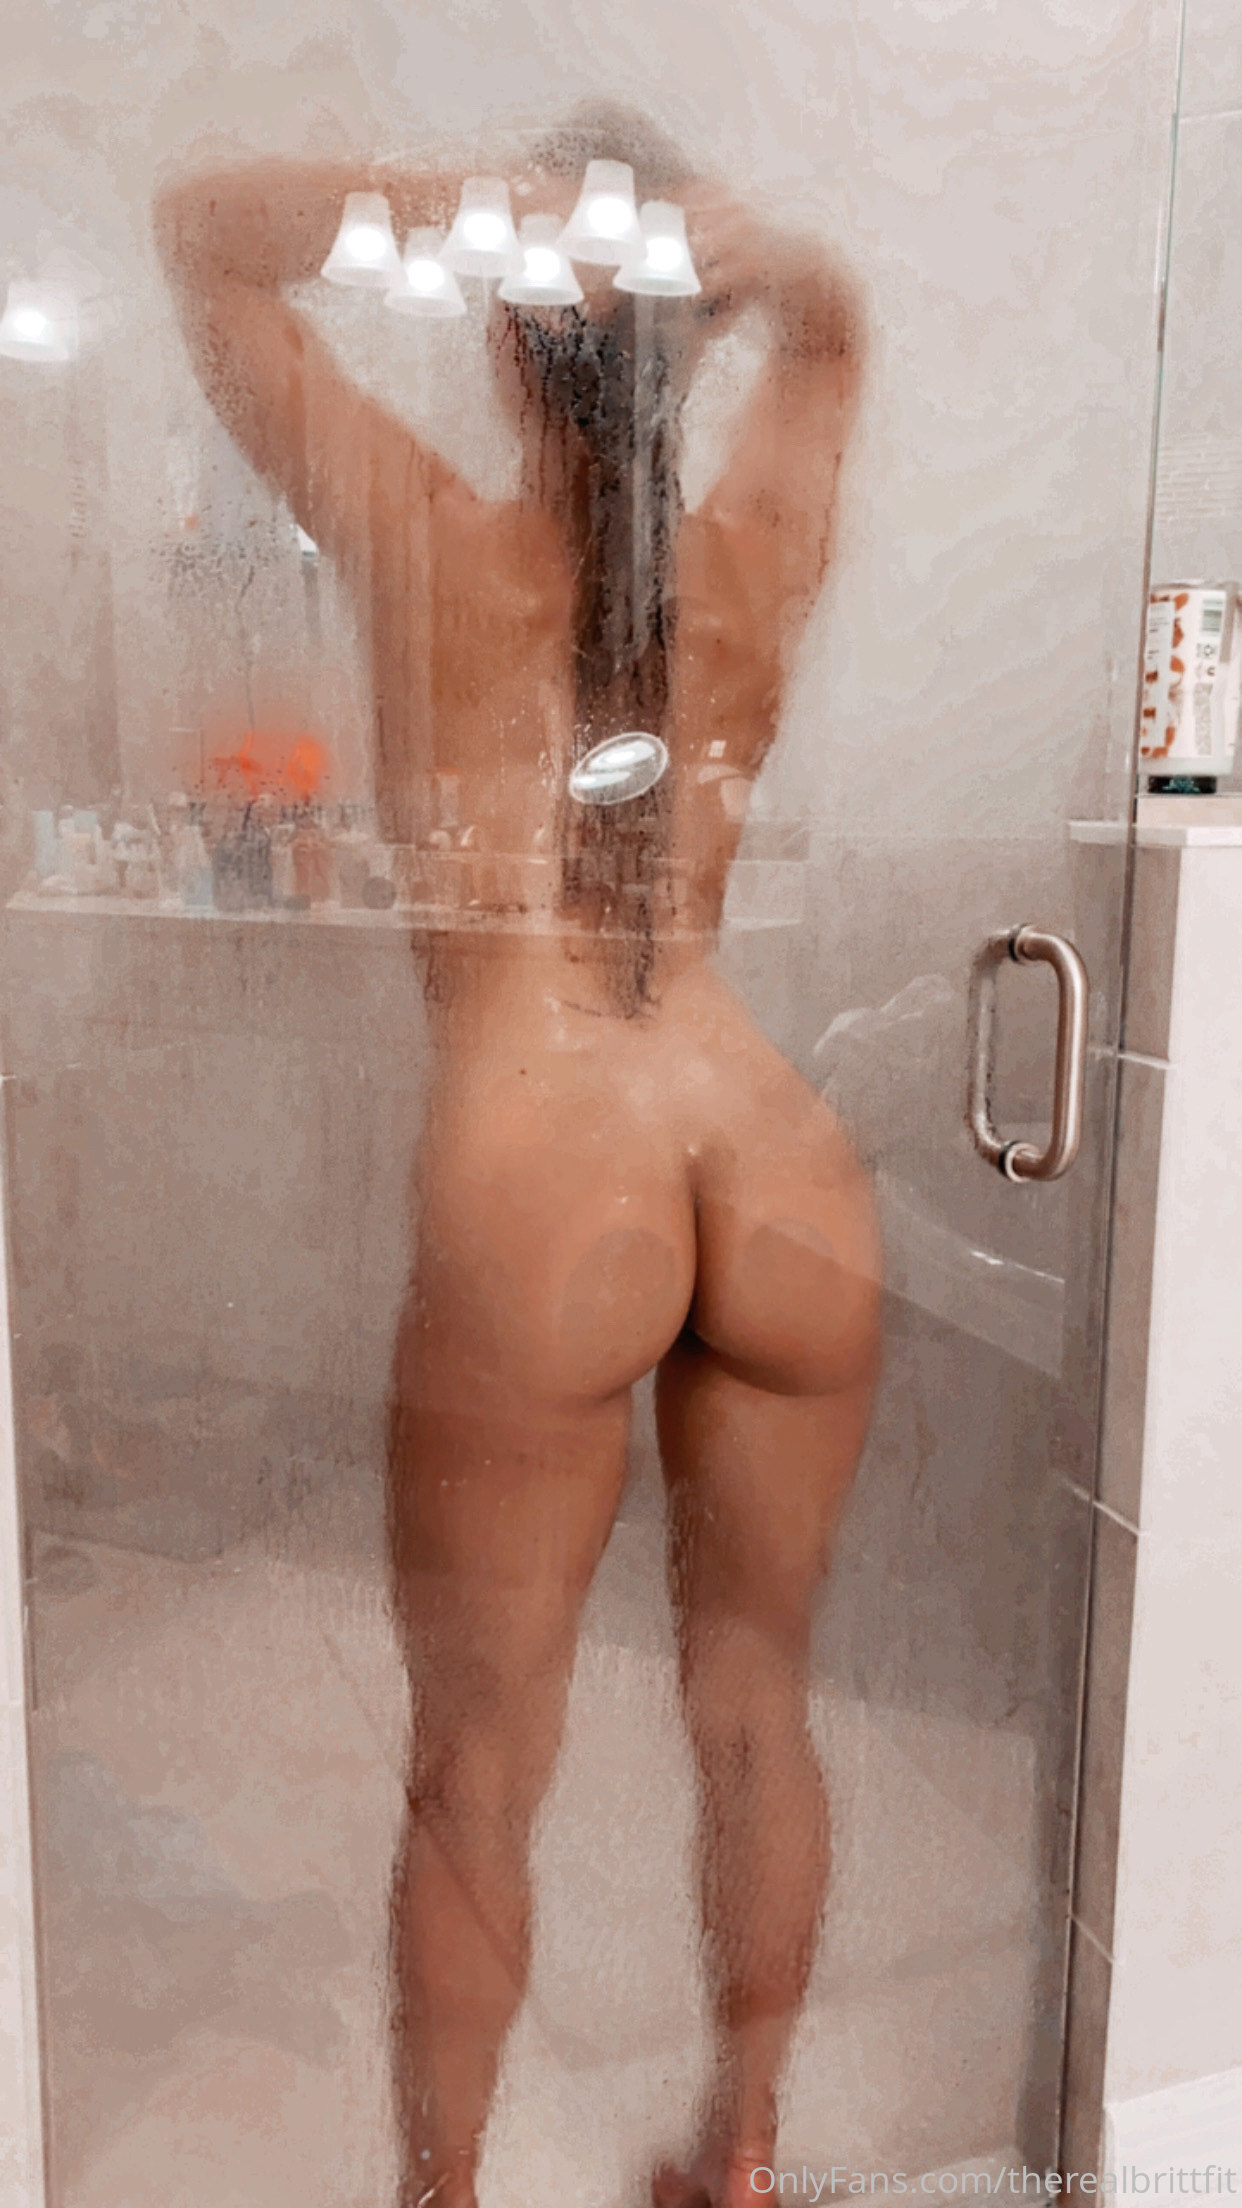 Therealbrittfit Nude Onlyfans Leaked 0006